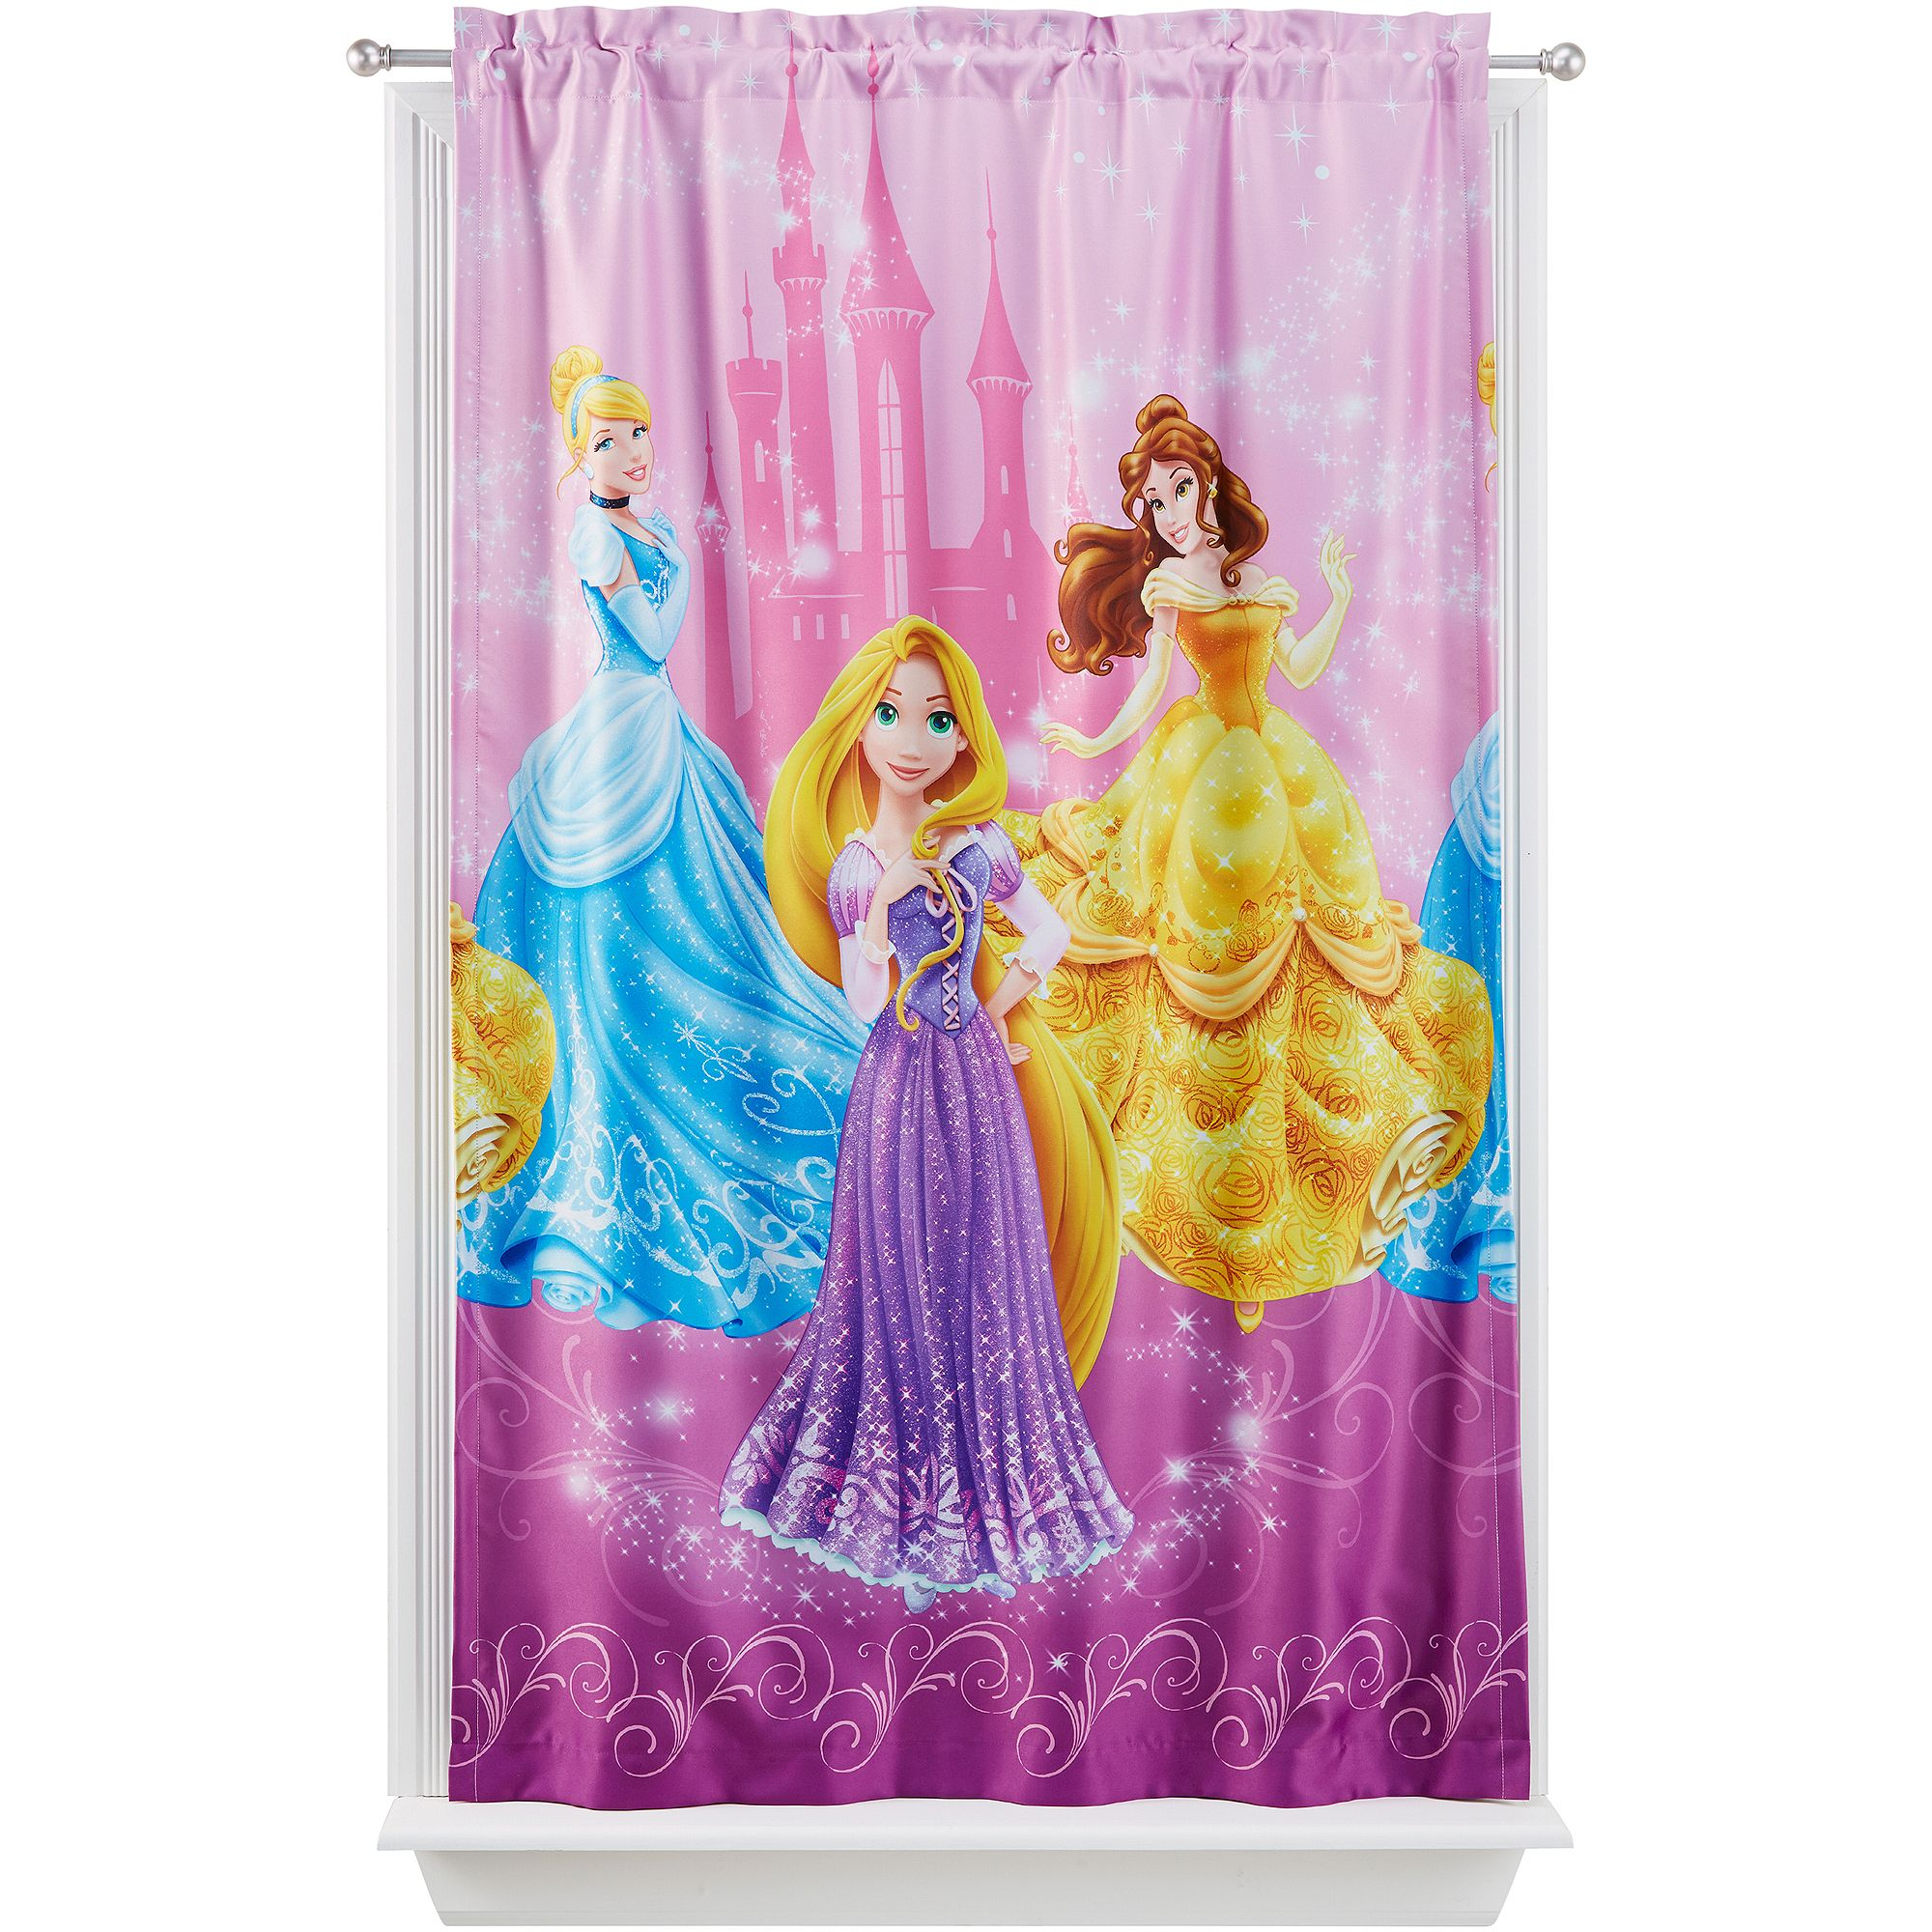 bedrooms archived curtain curtains photos cool photo video ideas walmart beautiful and window bedroom lace style white size of scre full sheer